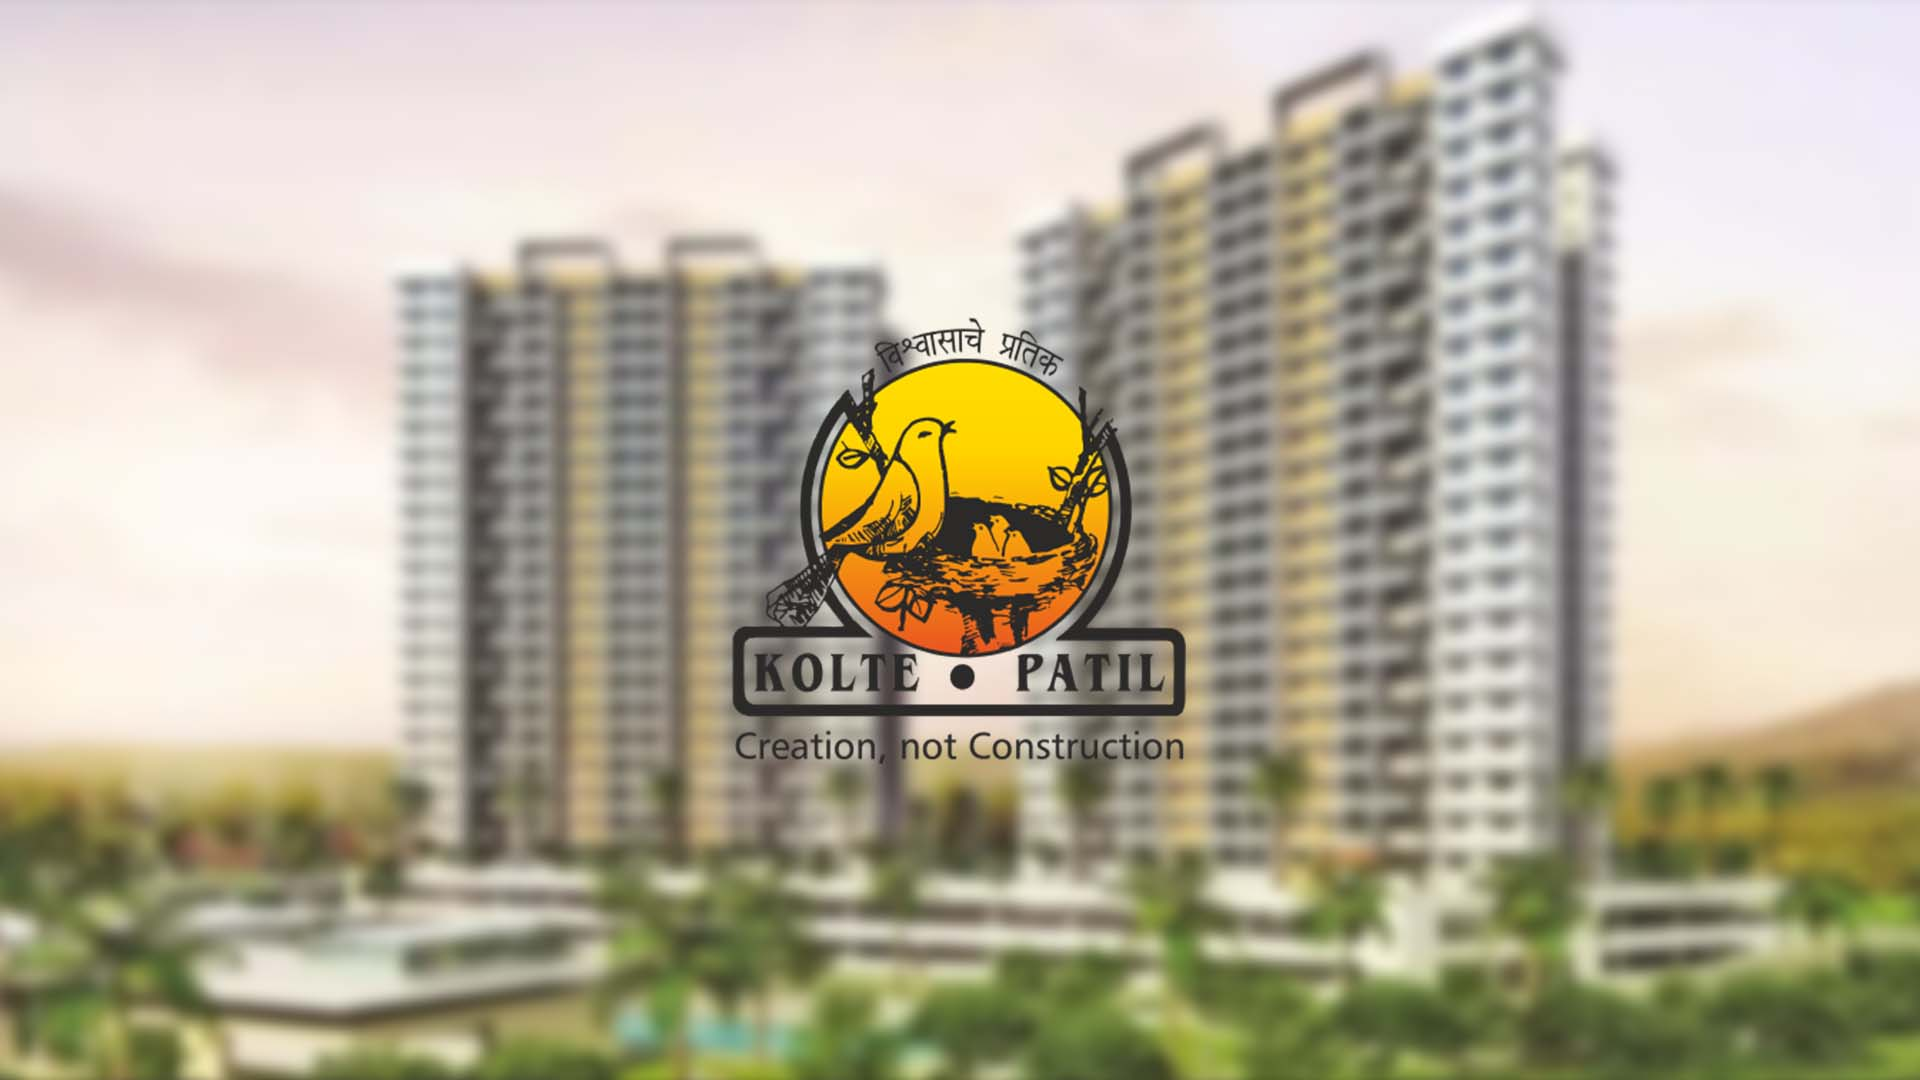 Kolte-Patil Developers' Unveils 'The Great Year End Sale' at its Life Republic Township Project in Pune